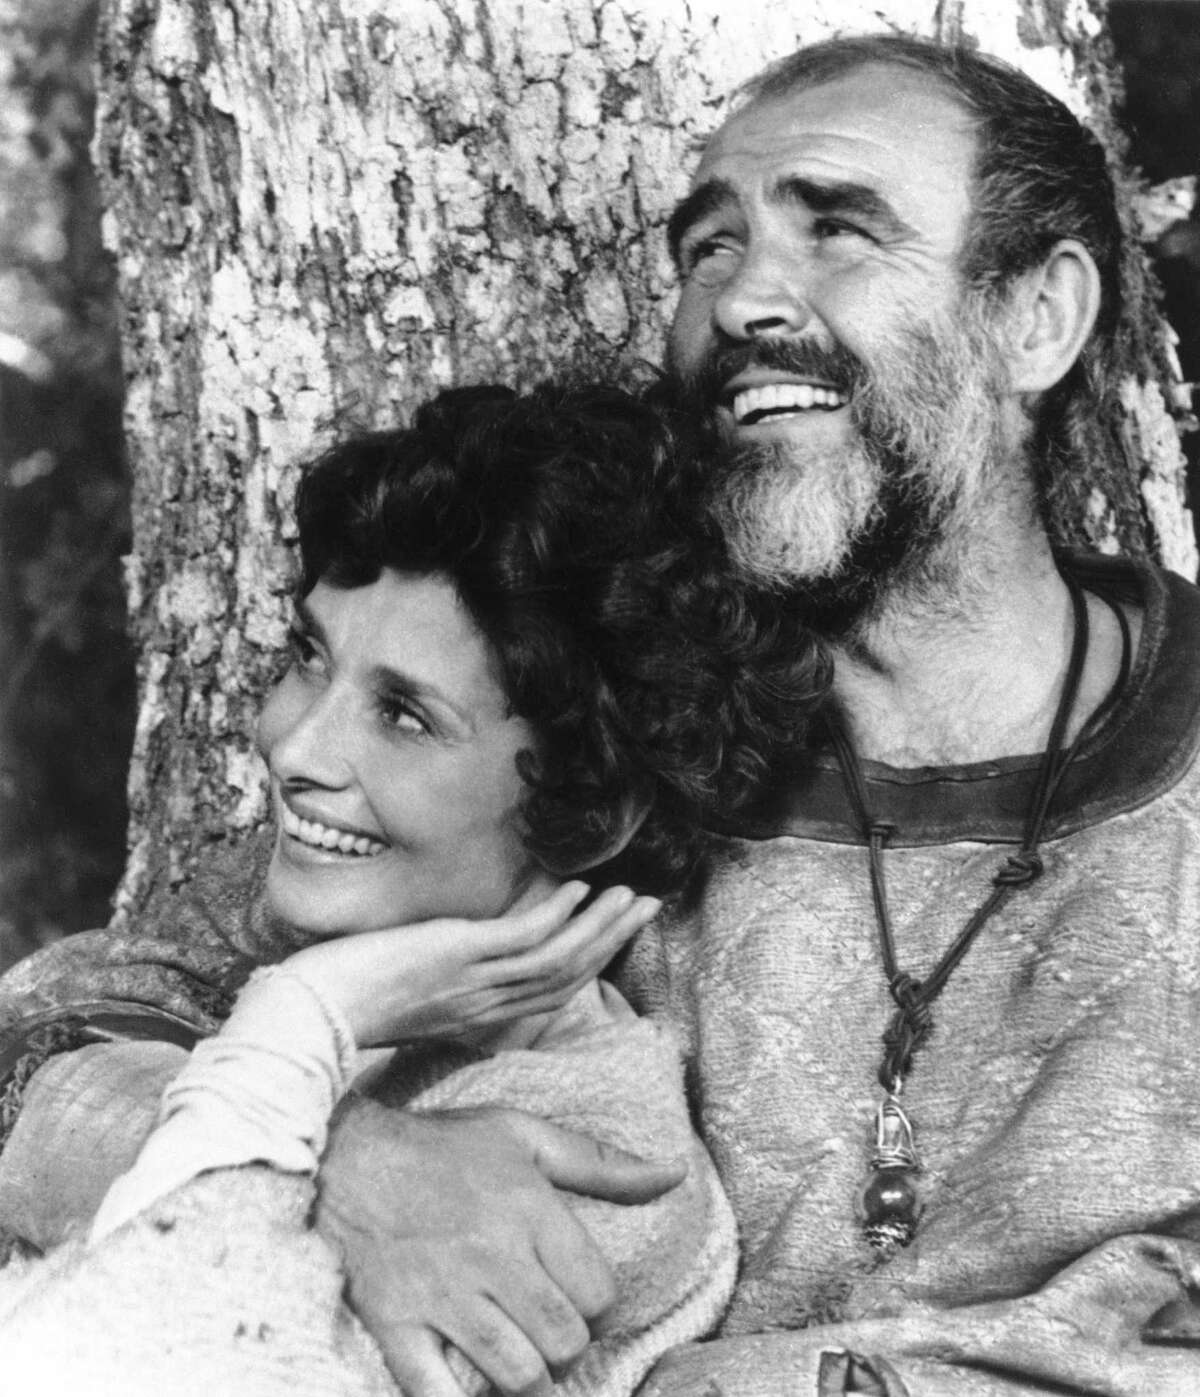 Robin and Marian (1976) In Richard Lester's lovely romance, Robin Hood has matured into a seasoned warrior who longs for a quieter life. Connery's approach to the role fascinates, playing down the heroics of Errol Flynn in favor of the melancholy of Henry Fonda. The result may be the strongest non-Bond performance he delivered, one that still perfectly plays 44 years after the film opened. Of course, working with the luminous Audrey Hepburn helps, too.